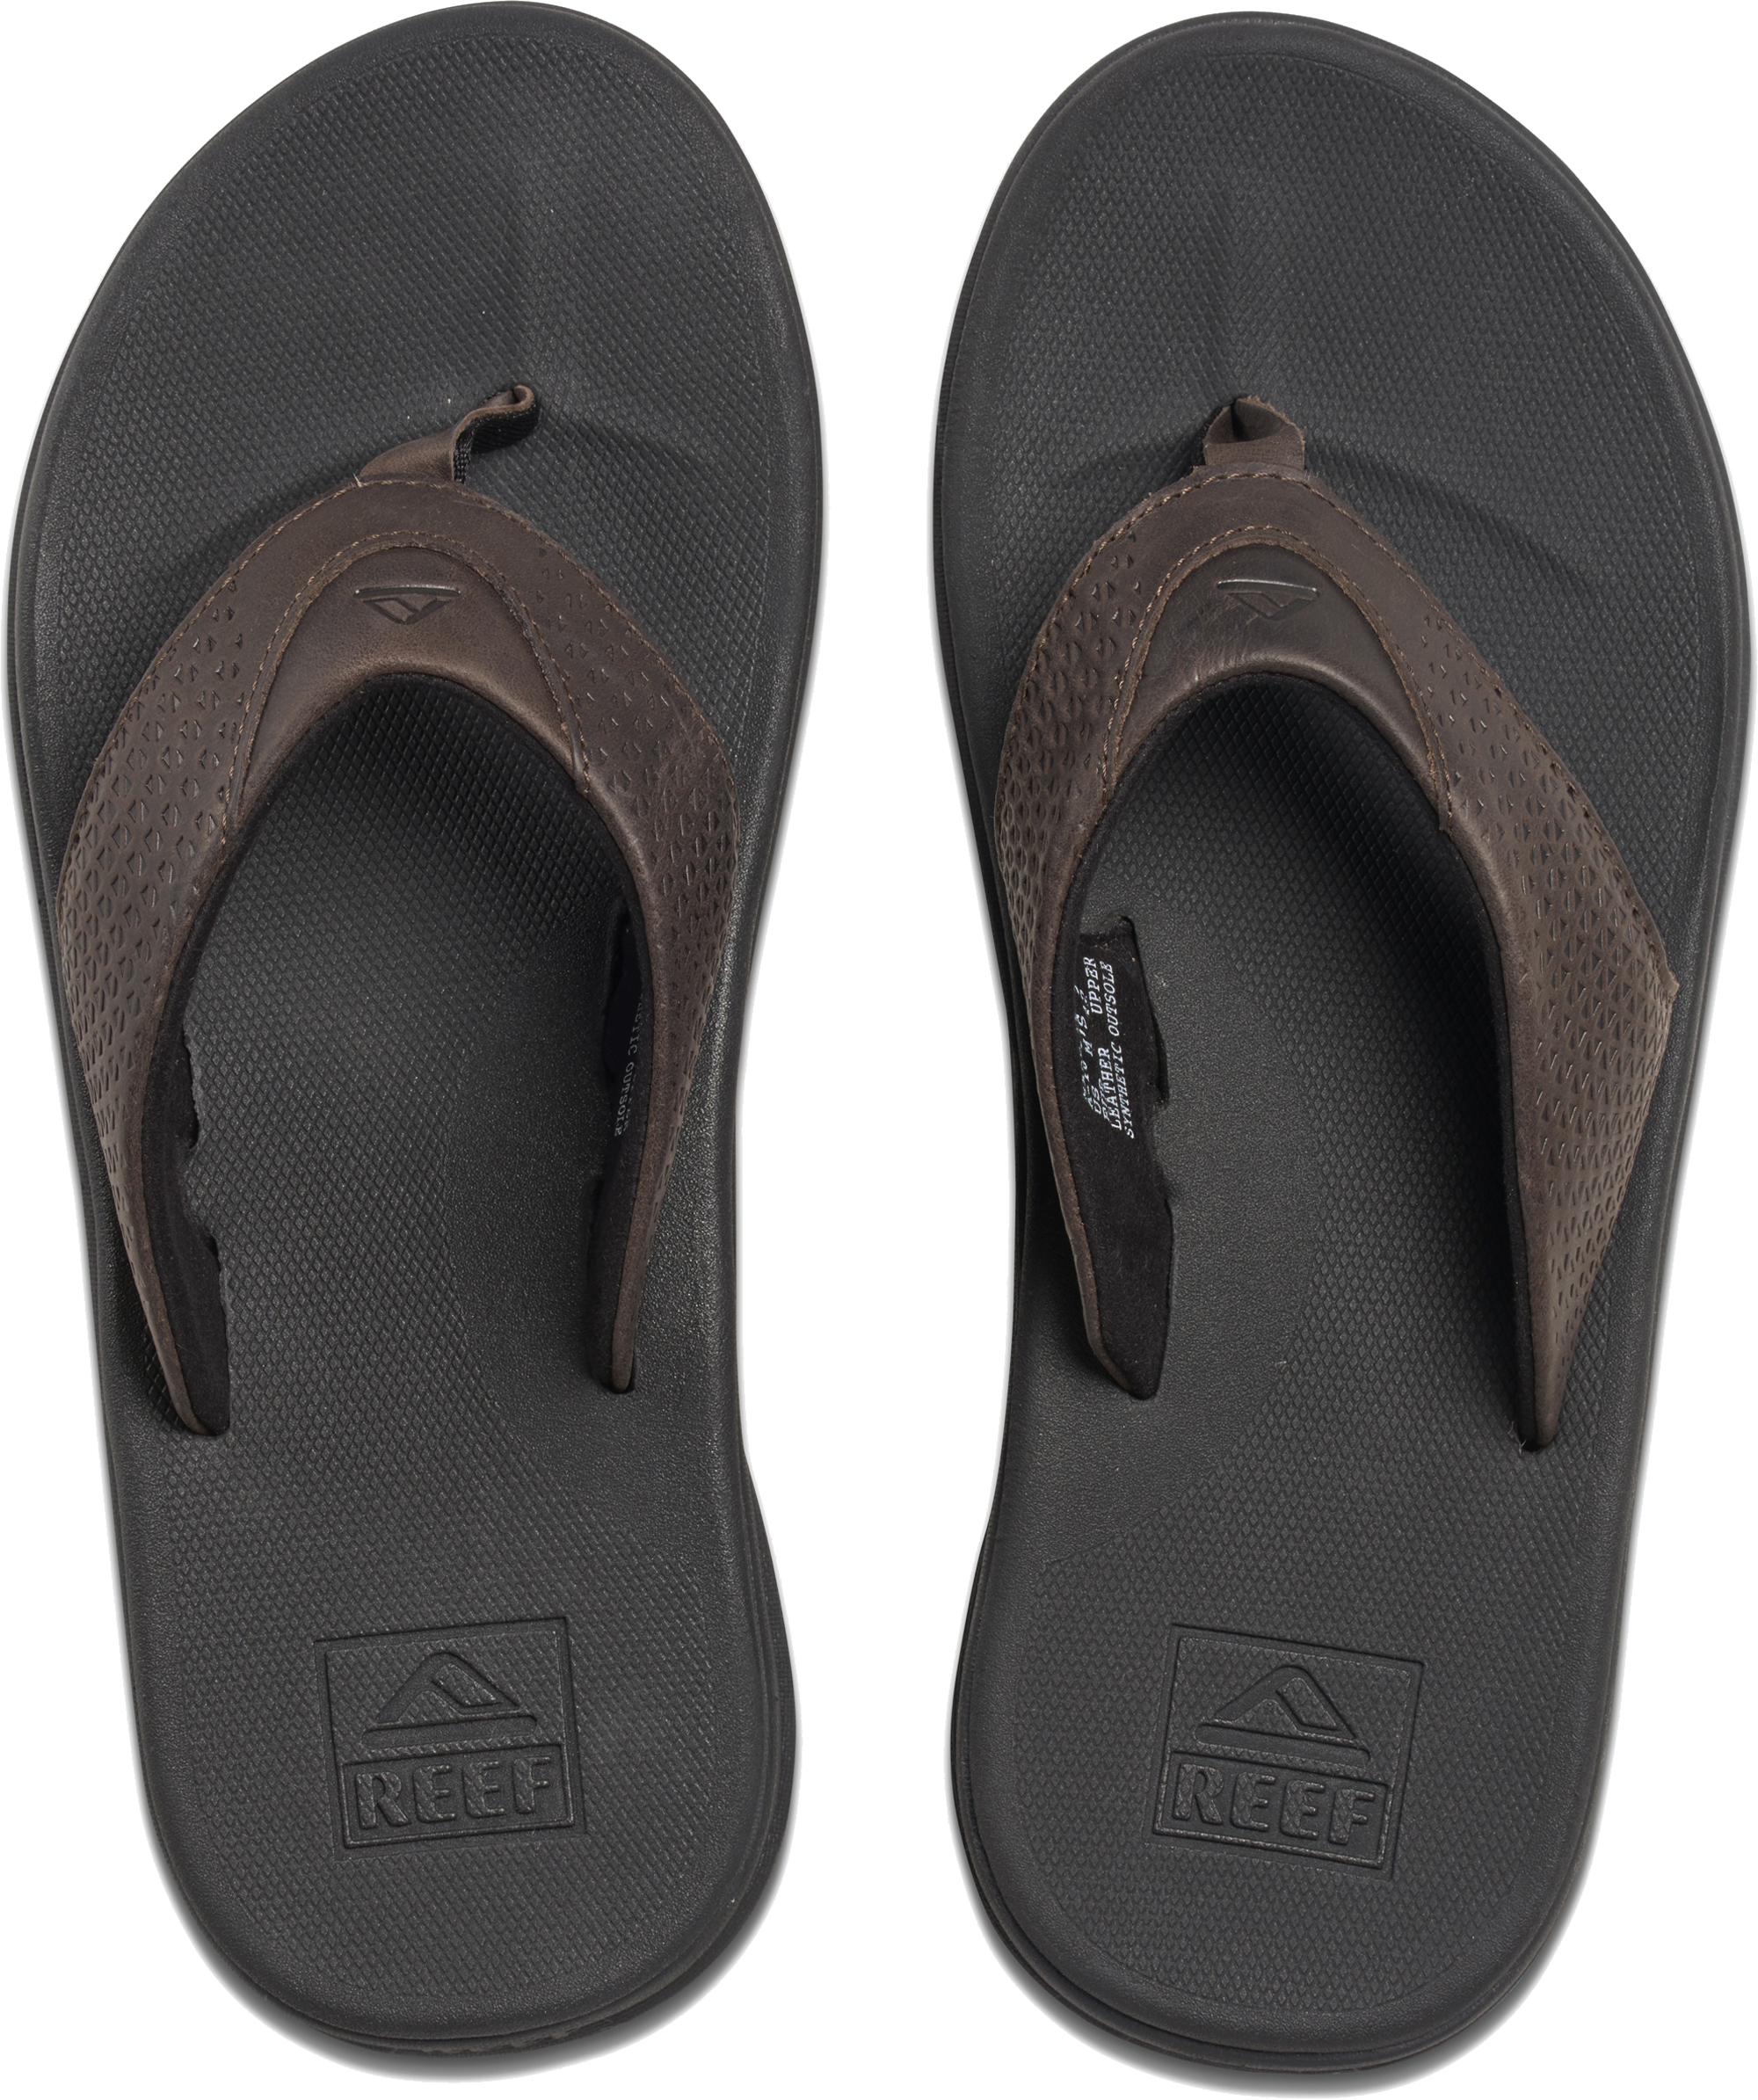 1bb5752cad1f Reef Men s Rover Leather Flip Flops Uk11 Black brown. About this product.  Picture 1 of 5  Picture 2 of 5 ...